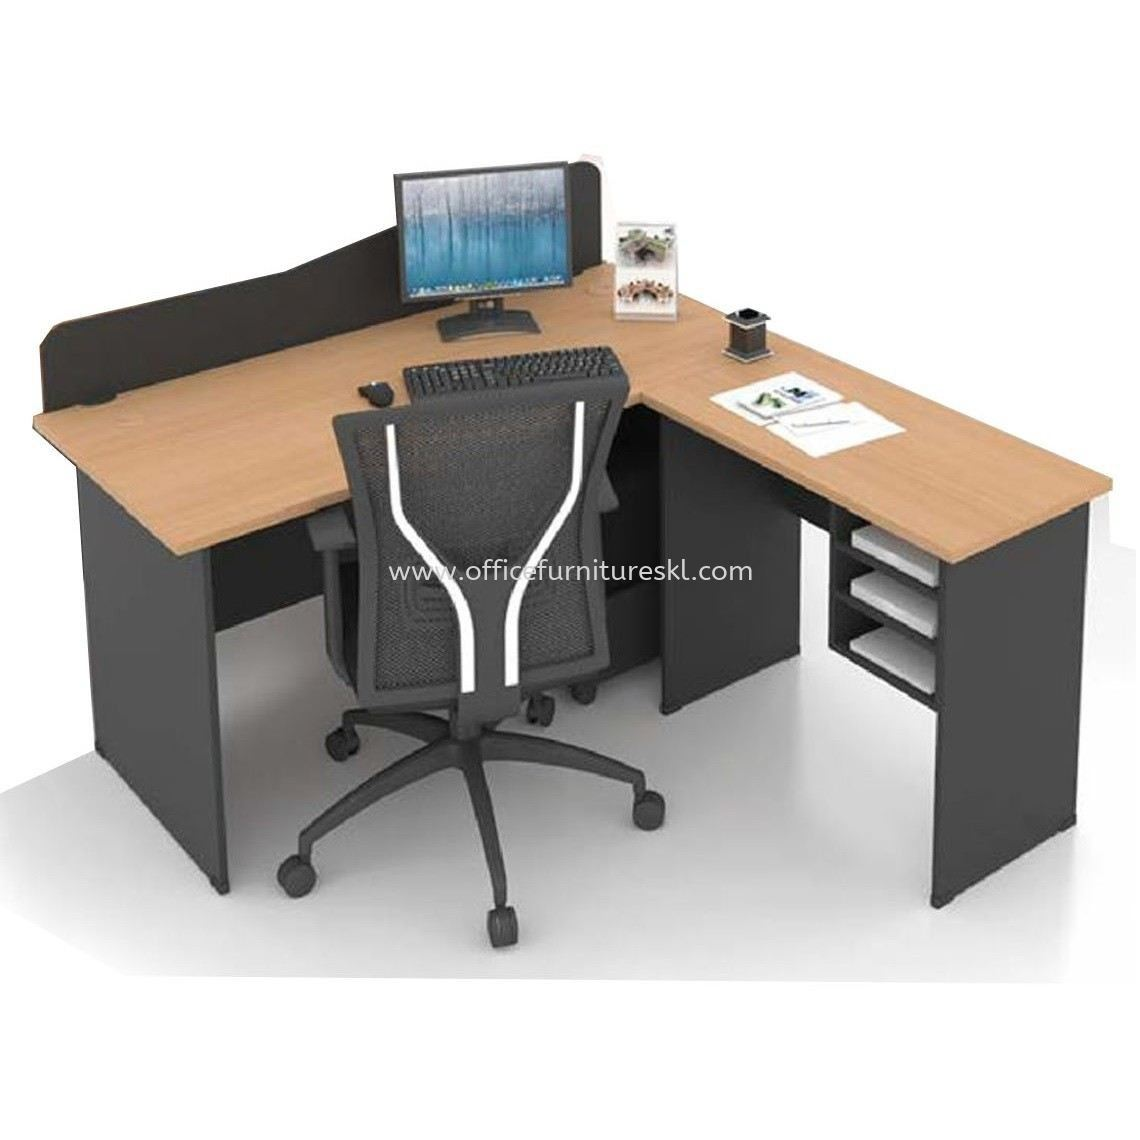 FOBIES 4 FEET OFFICE TABLE WITH PARTITION BOARD C/W SIDE TABLE & RETURN RACK SET - Office Table Puchong | Office Table Sunway | Office Table Subang | Office Table Shah Alam